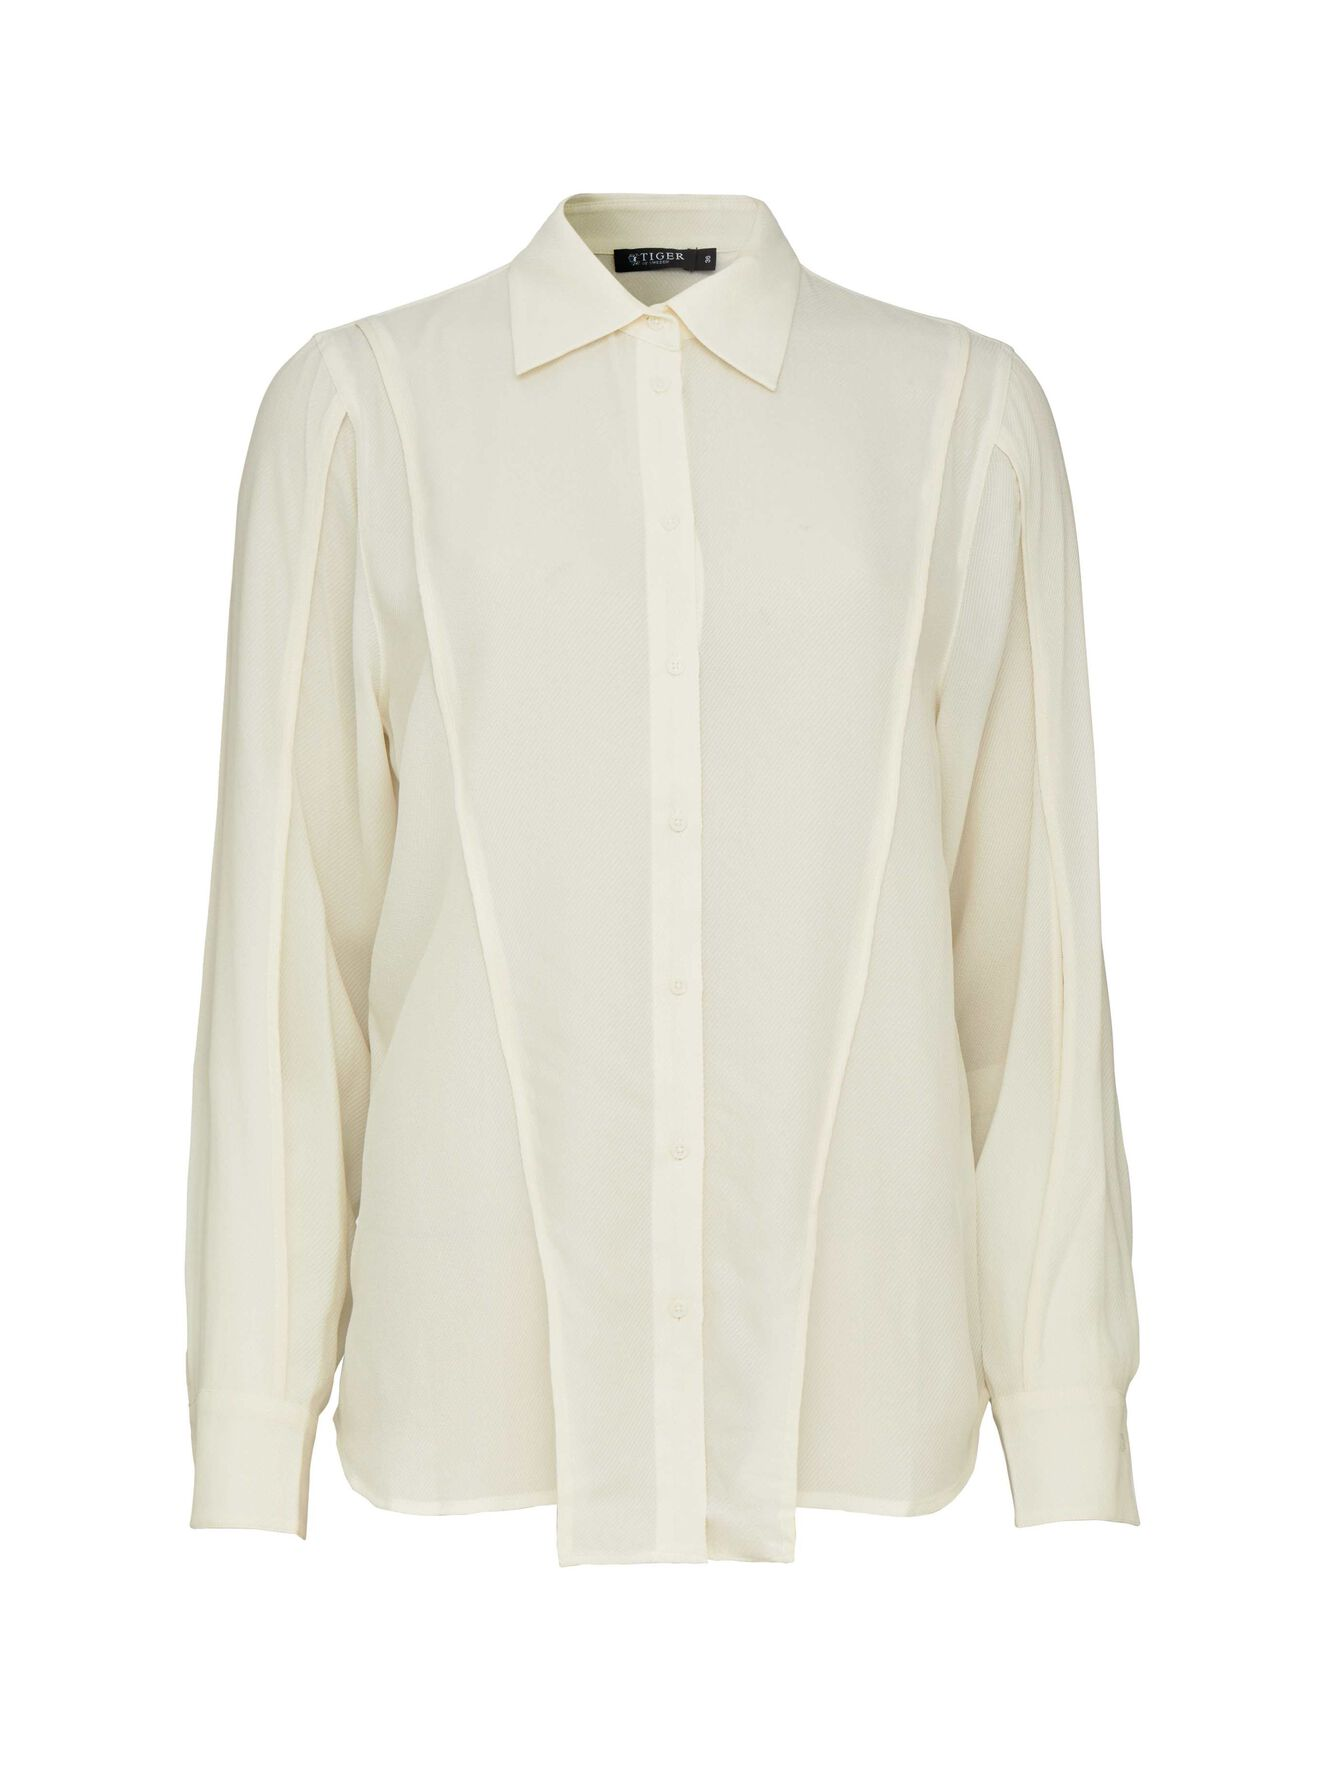 BELO SHIRT in Divine White from Tiger of Sweden